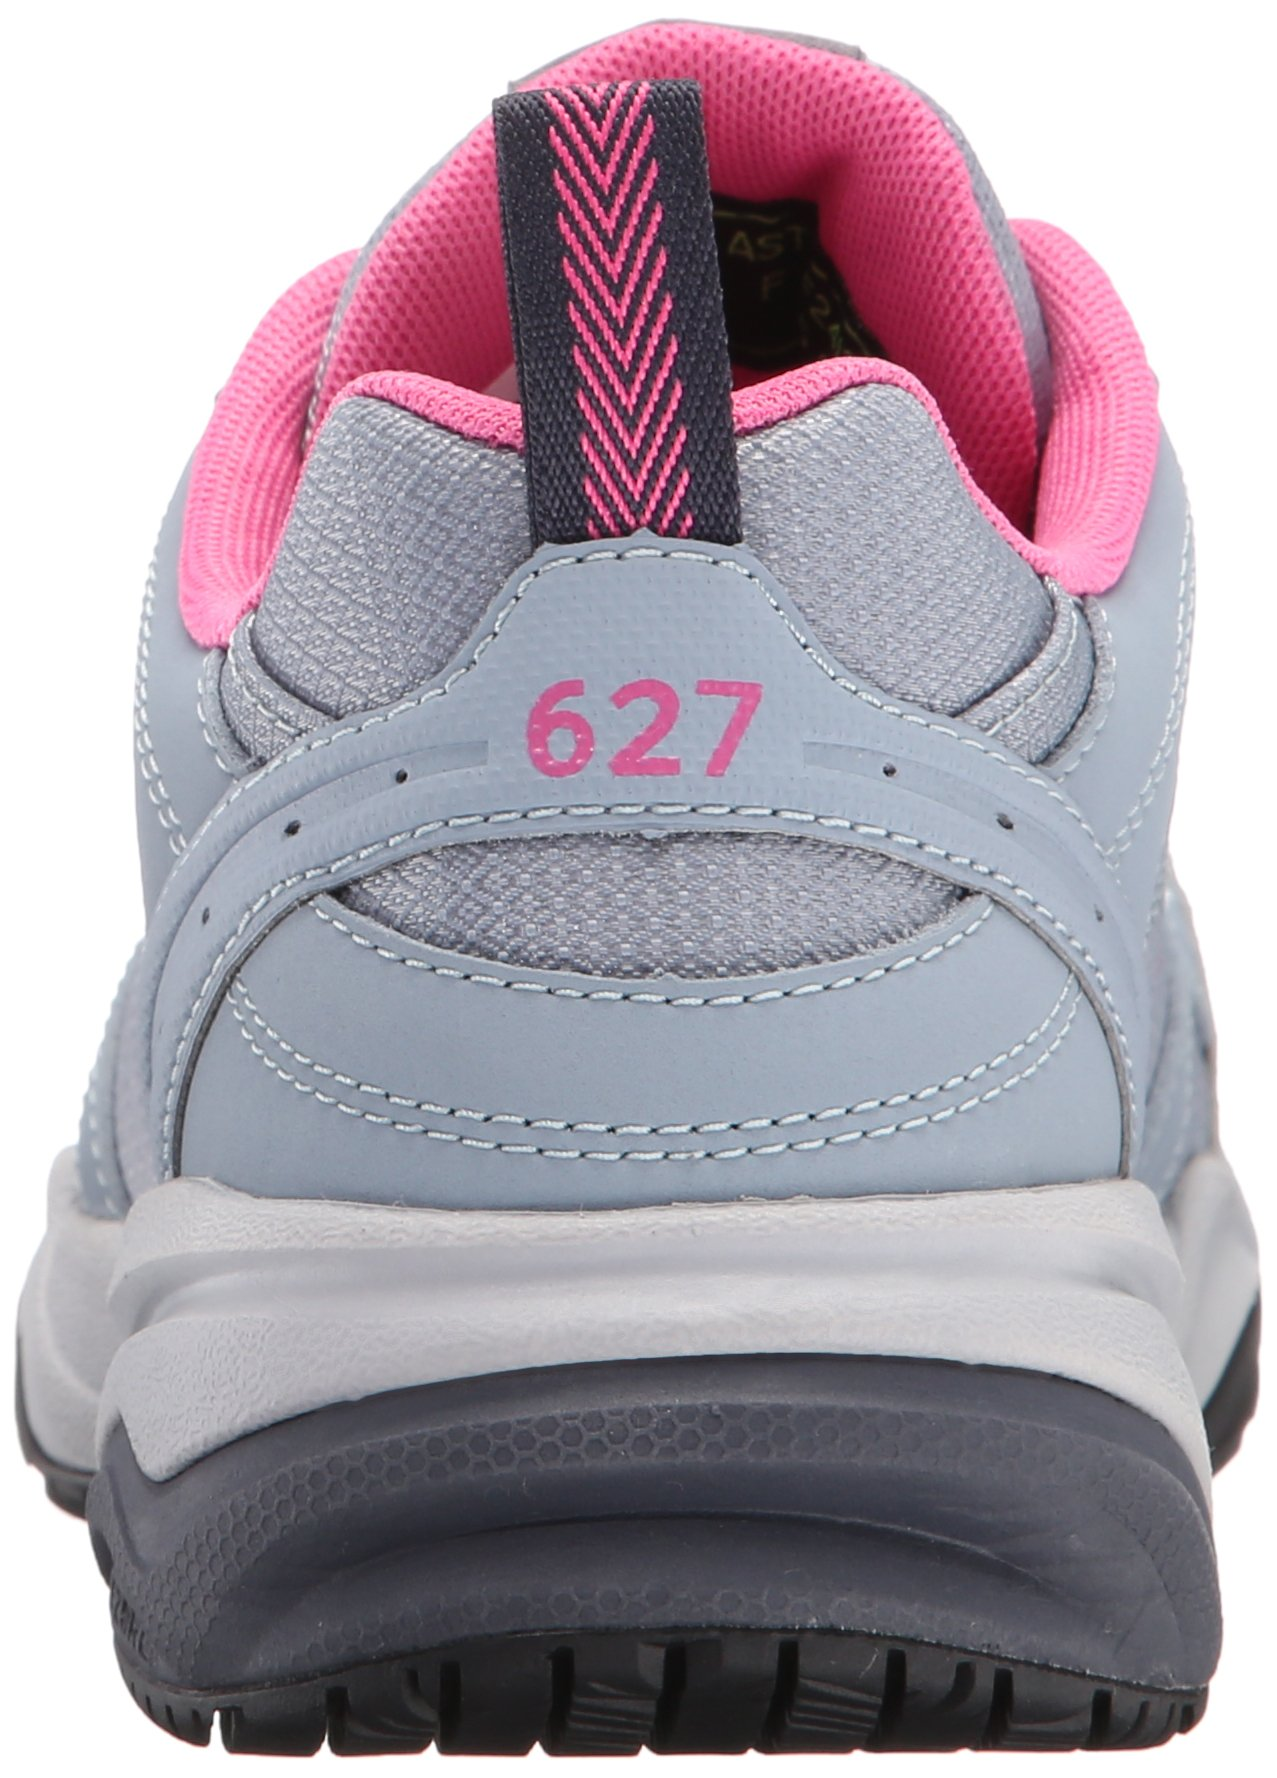 New Balance Women's WID627V1 Steel Toe Training Work Shoe,Light Grey/Pink,8 B US by New Balance (Image #2)